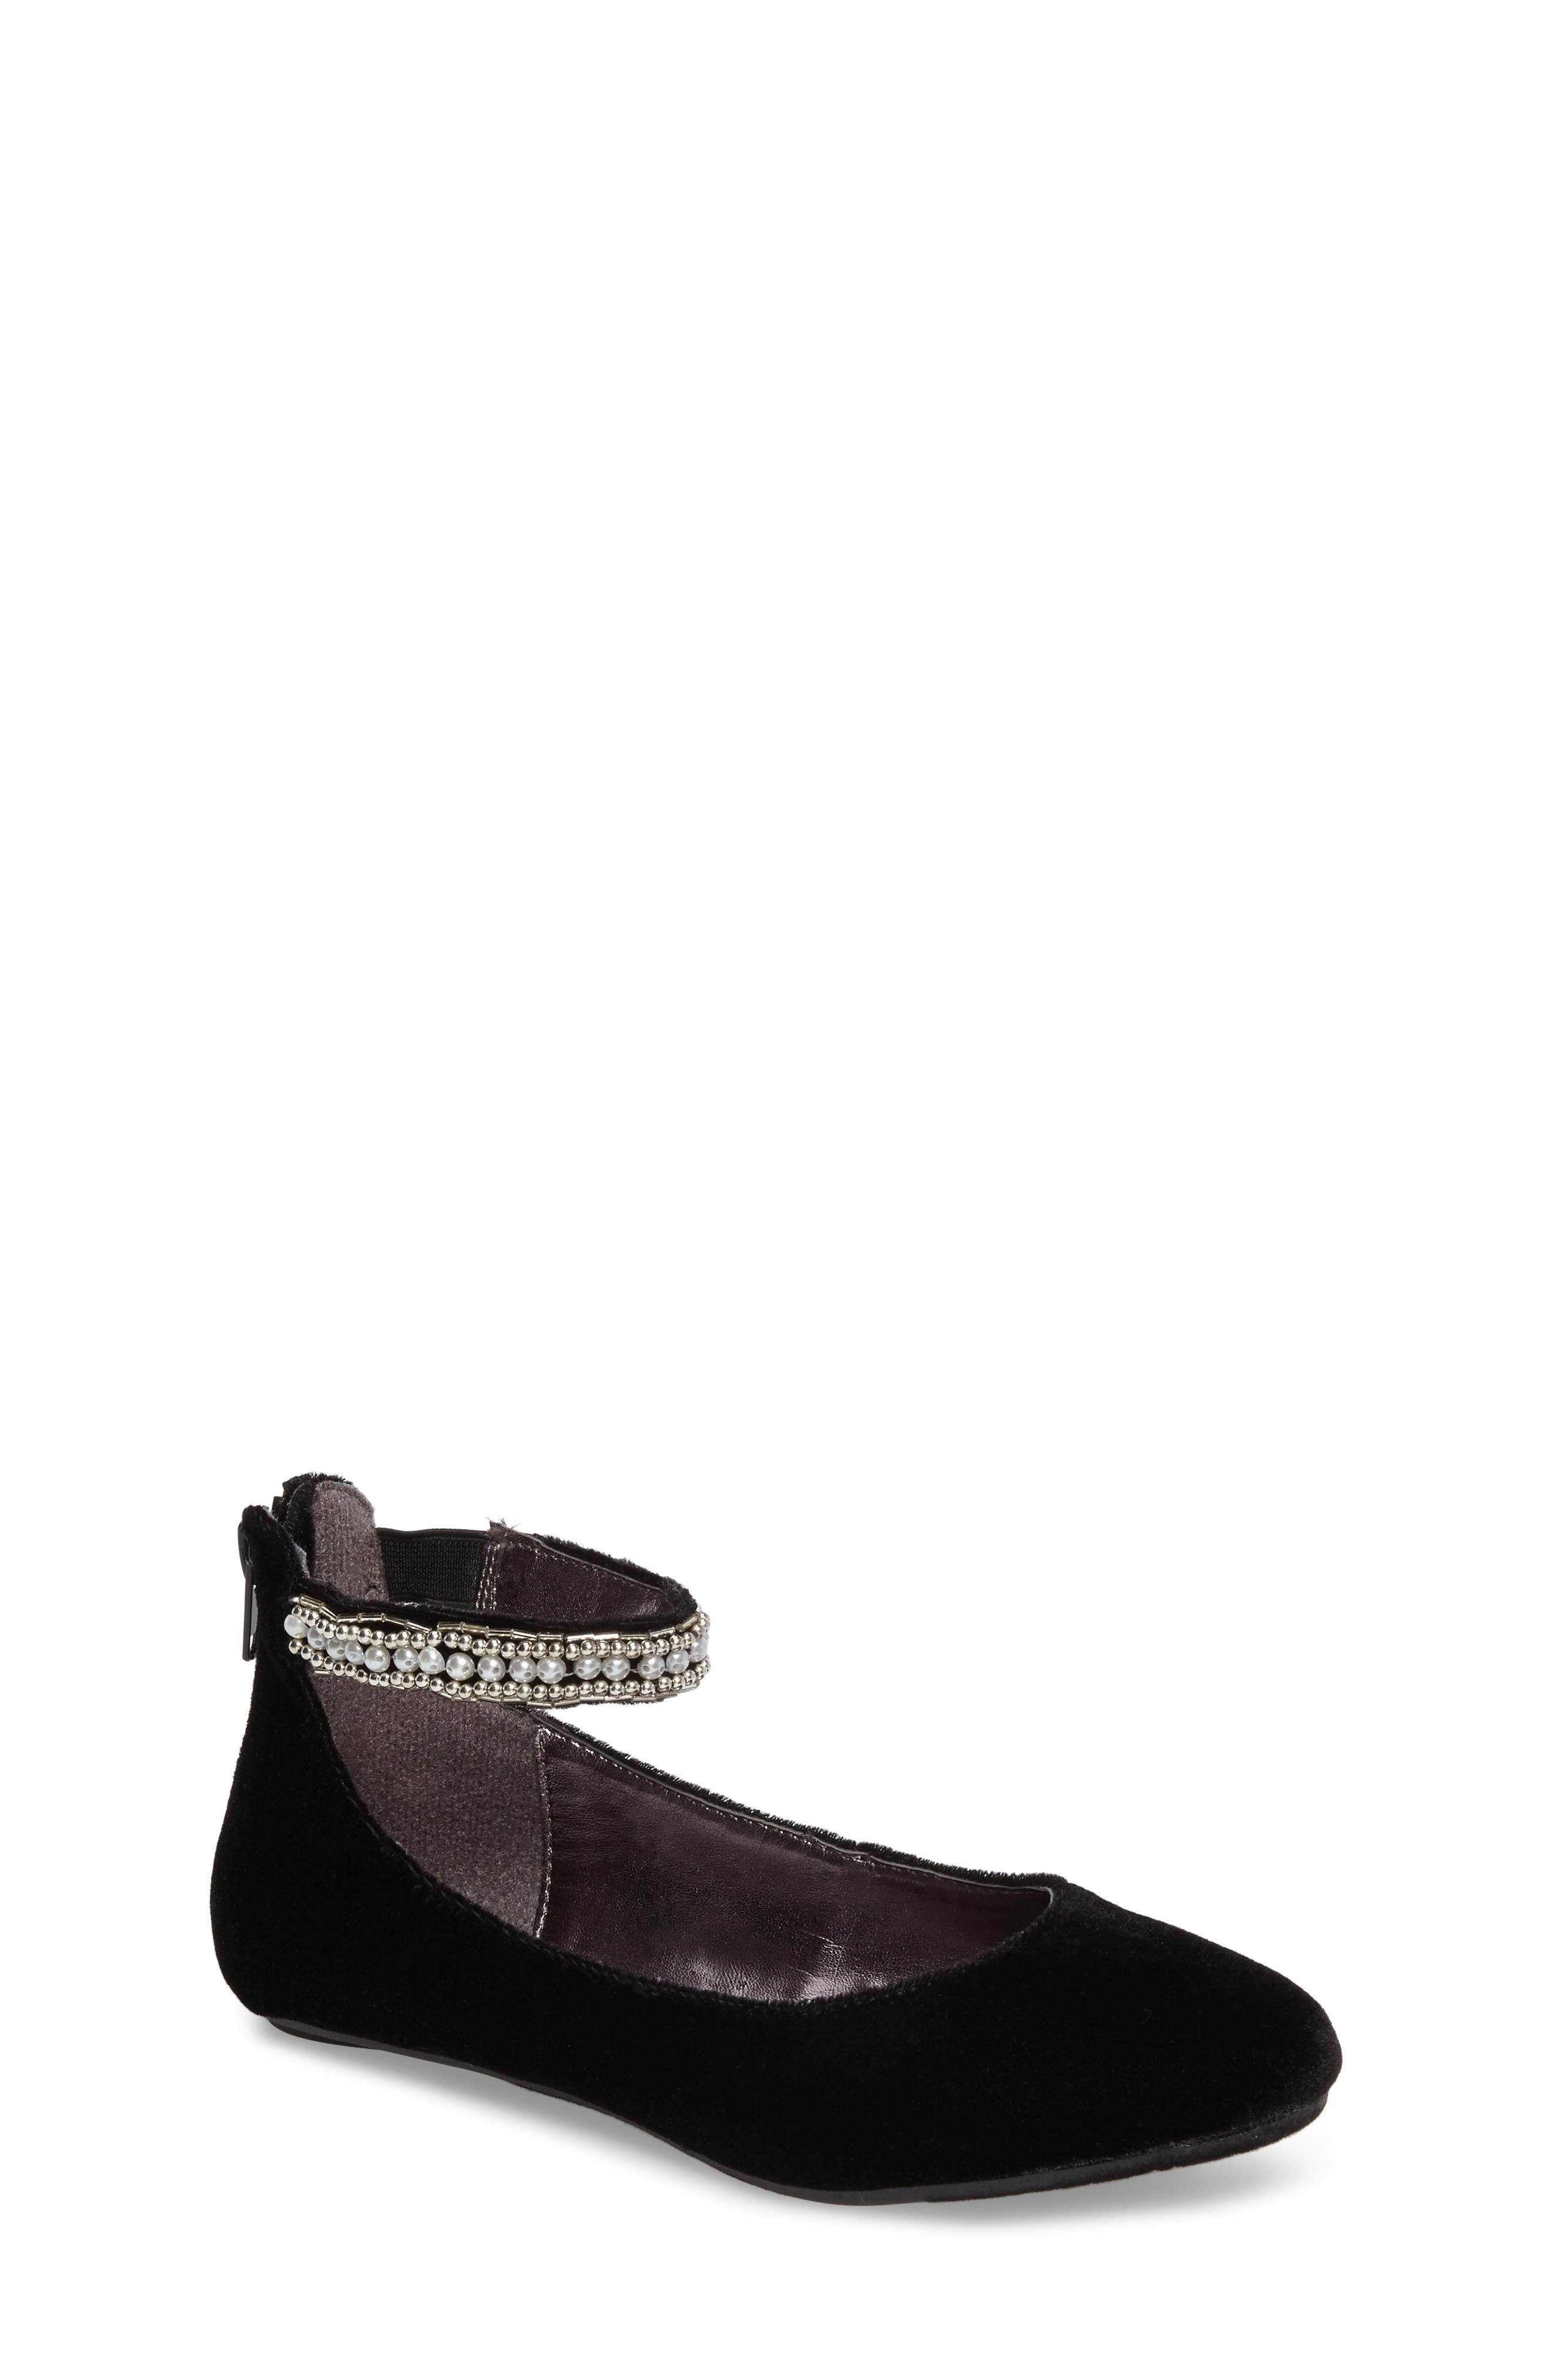 Zilerp Embellished Ankle Strap Flat,                             Main thumbnail 1, color,                             009